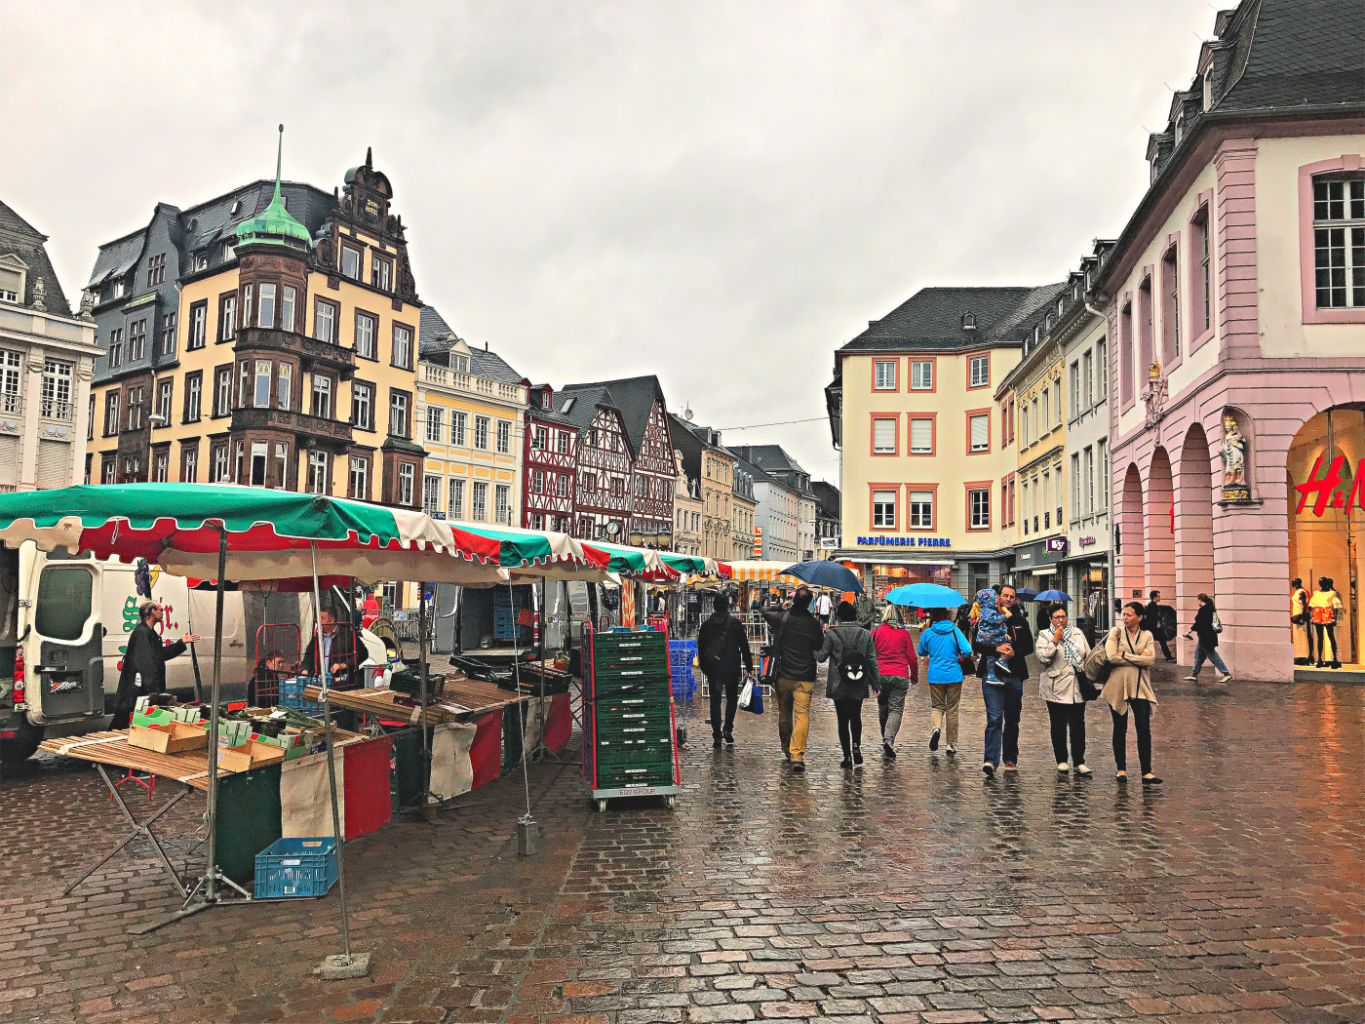 Market in Trier Germany - visit Germany with teens and shop the summer sales